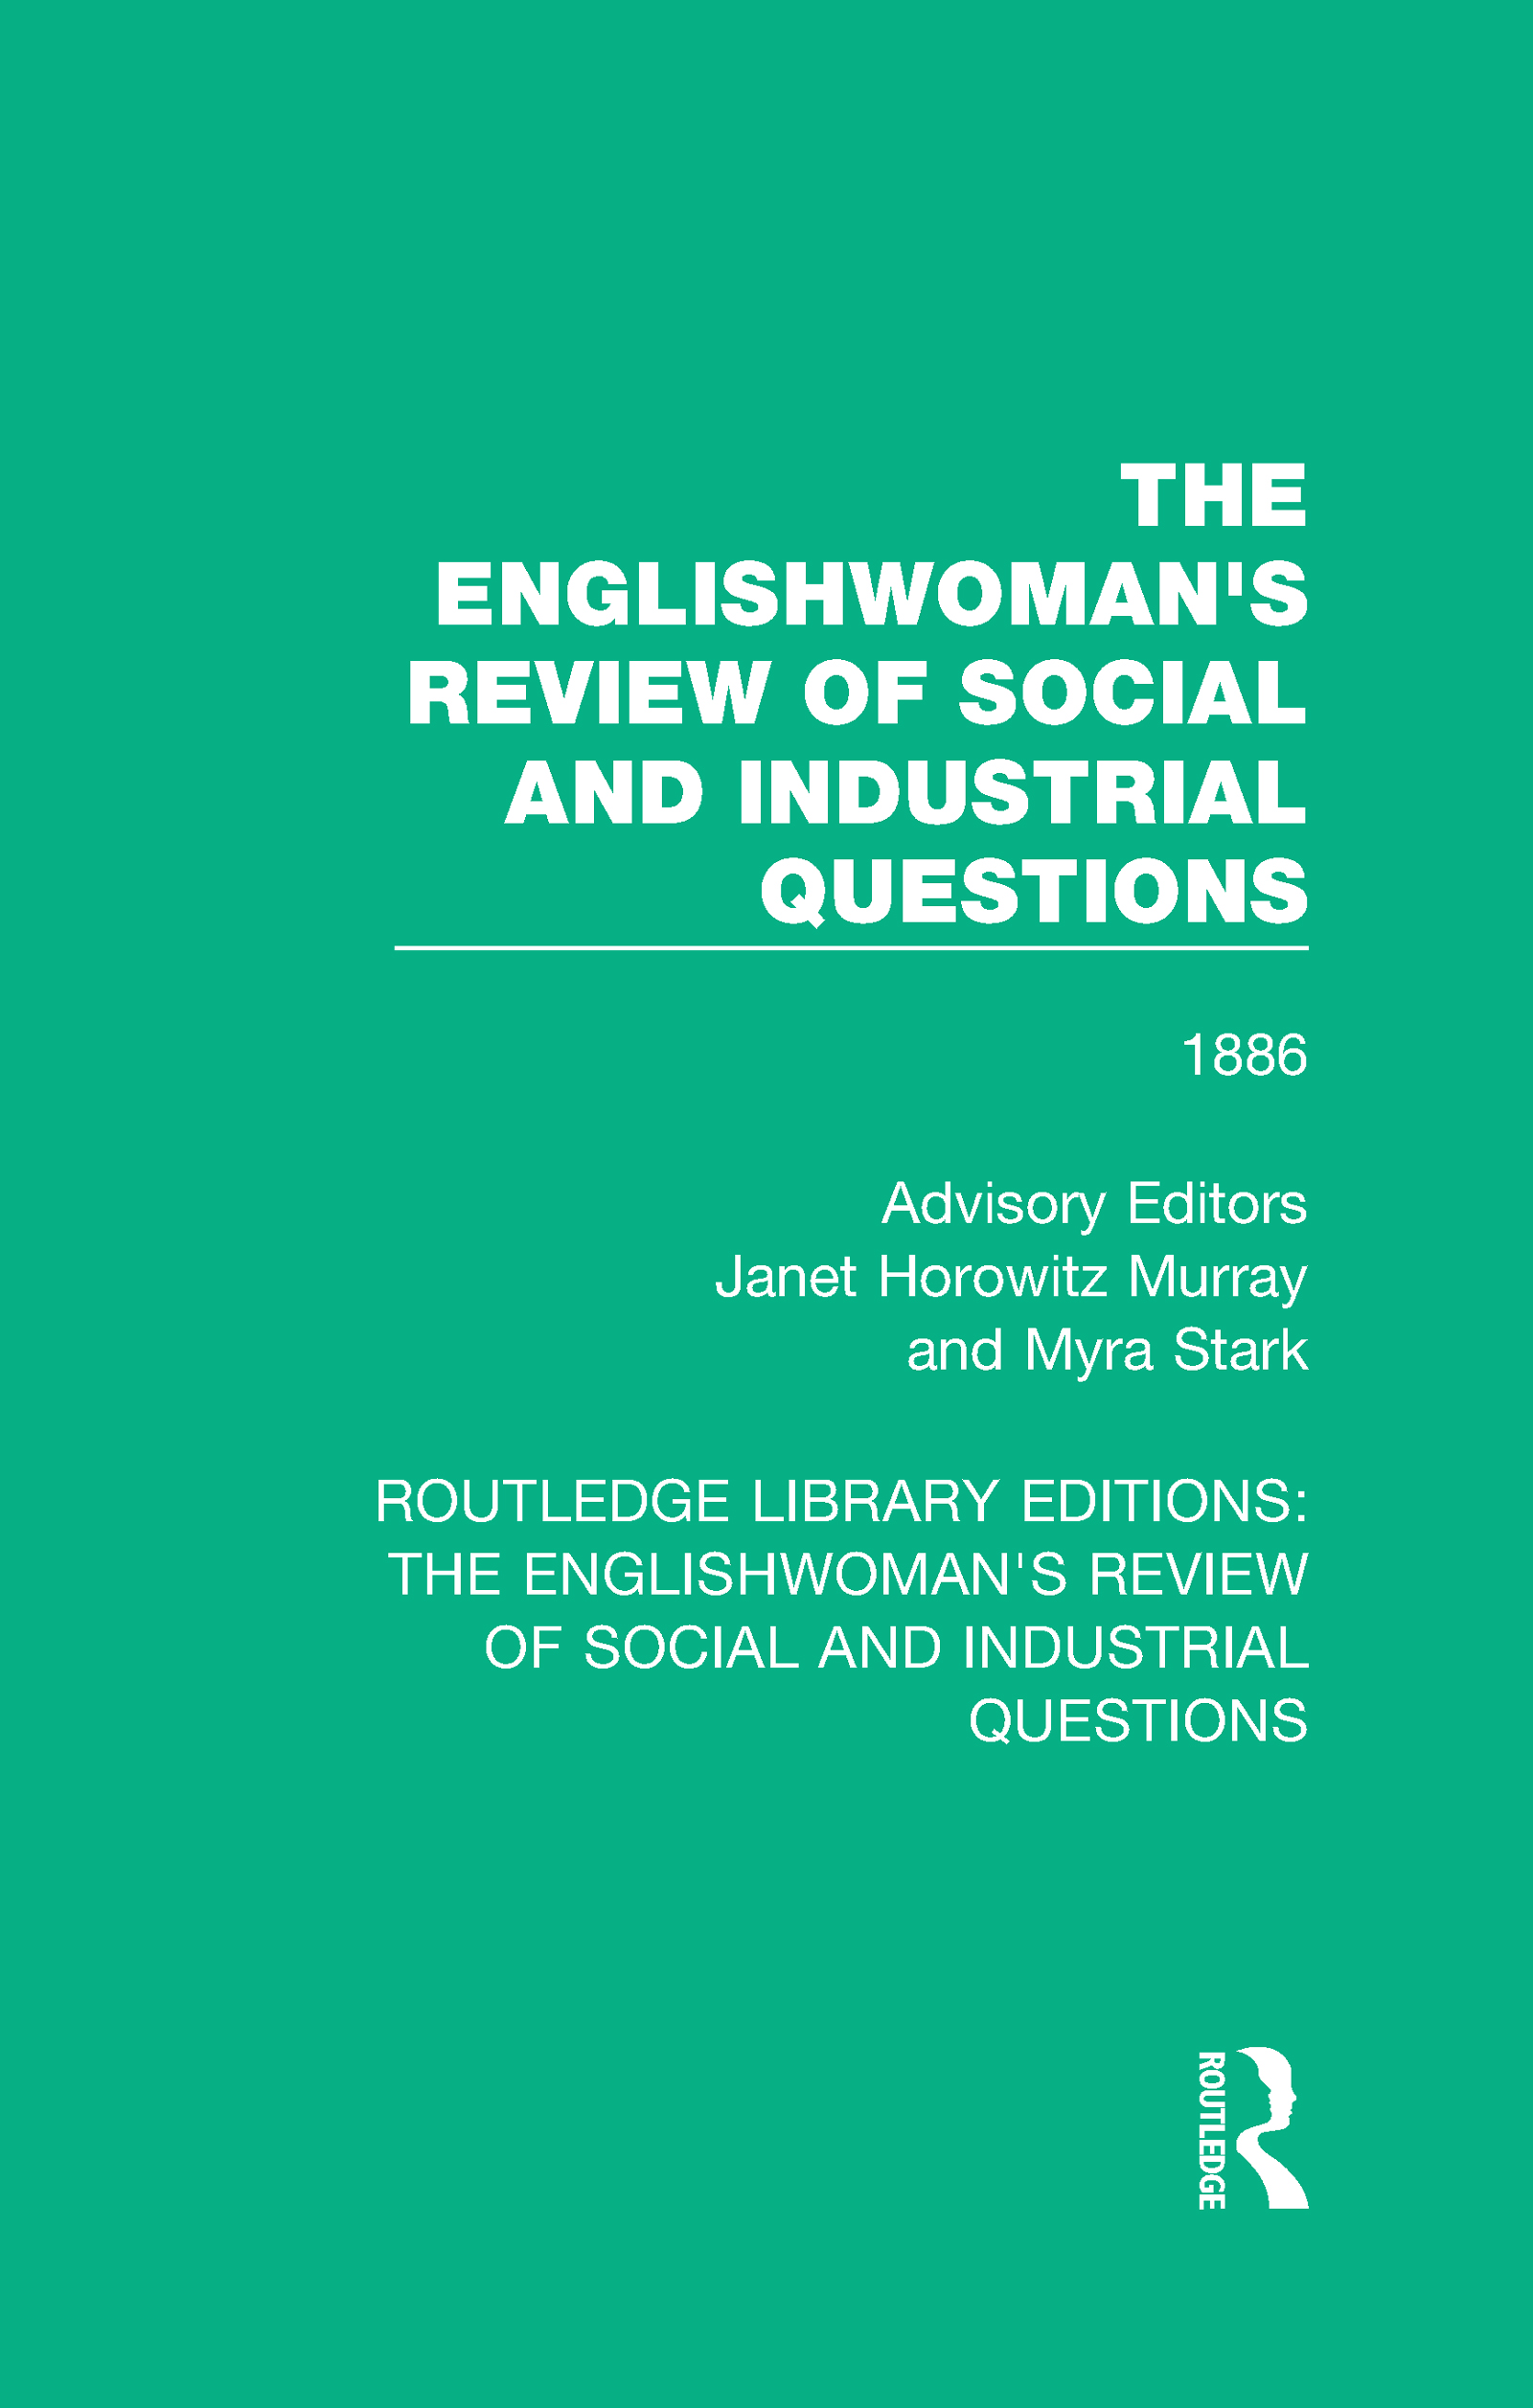 The Englishwoman's Review of Social and Industrial Questions: 1886 book cover